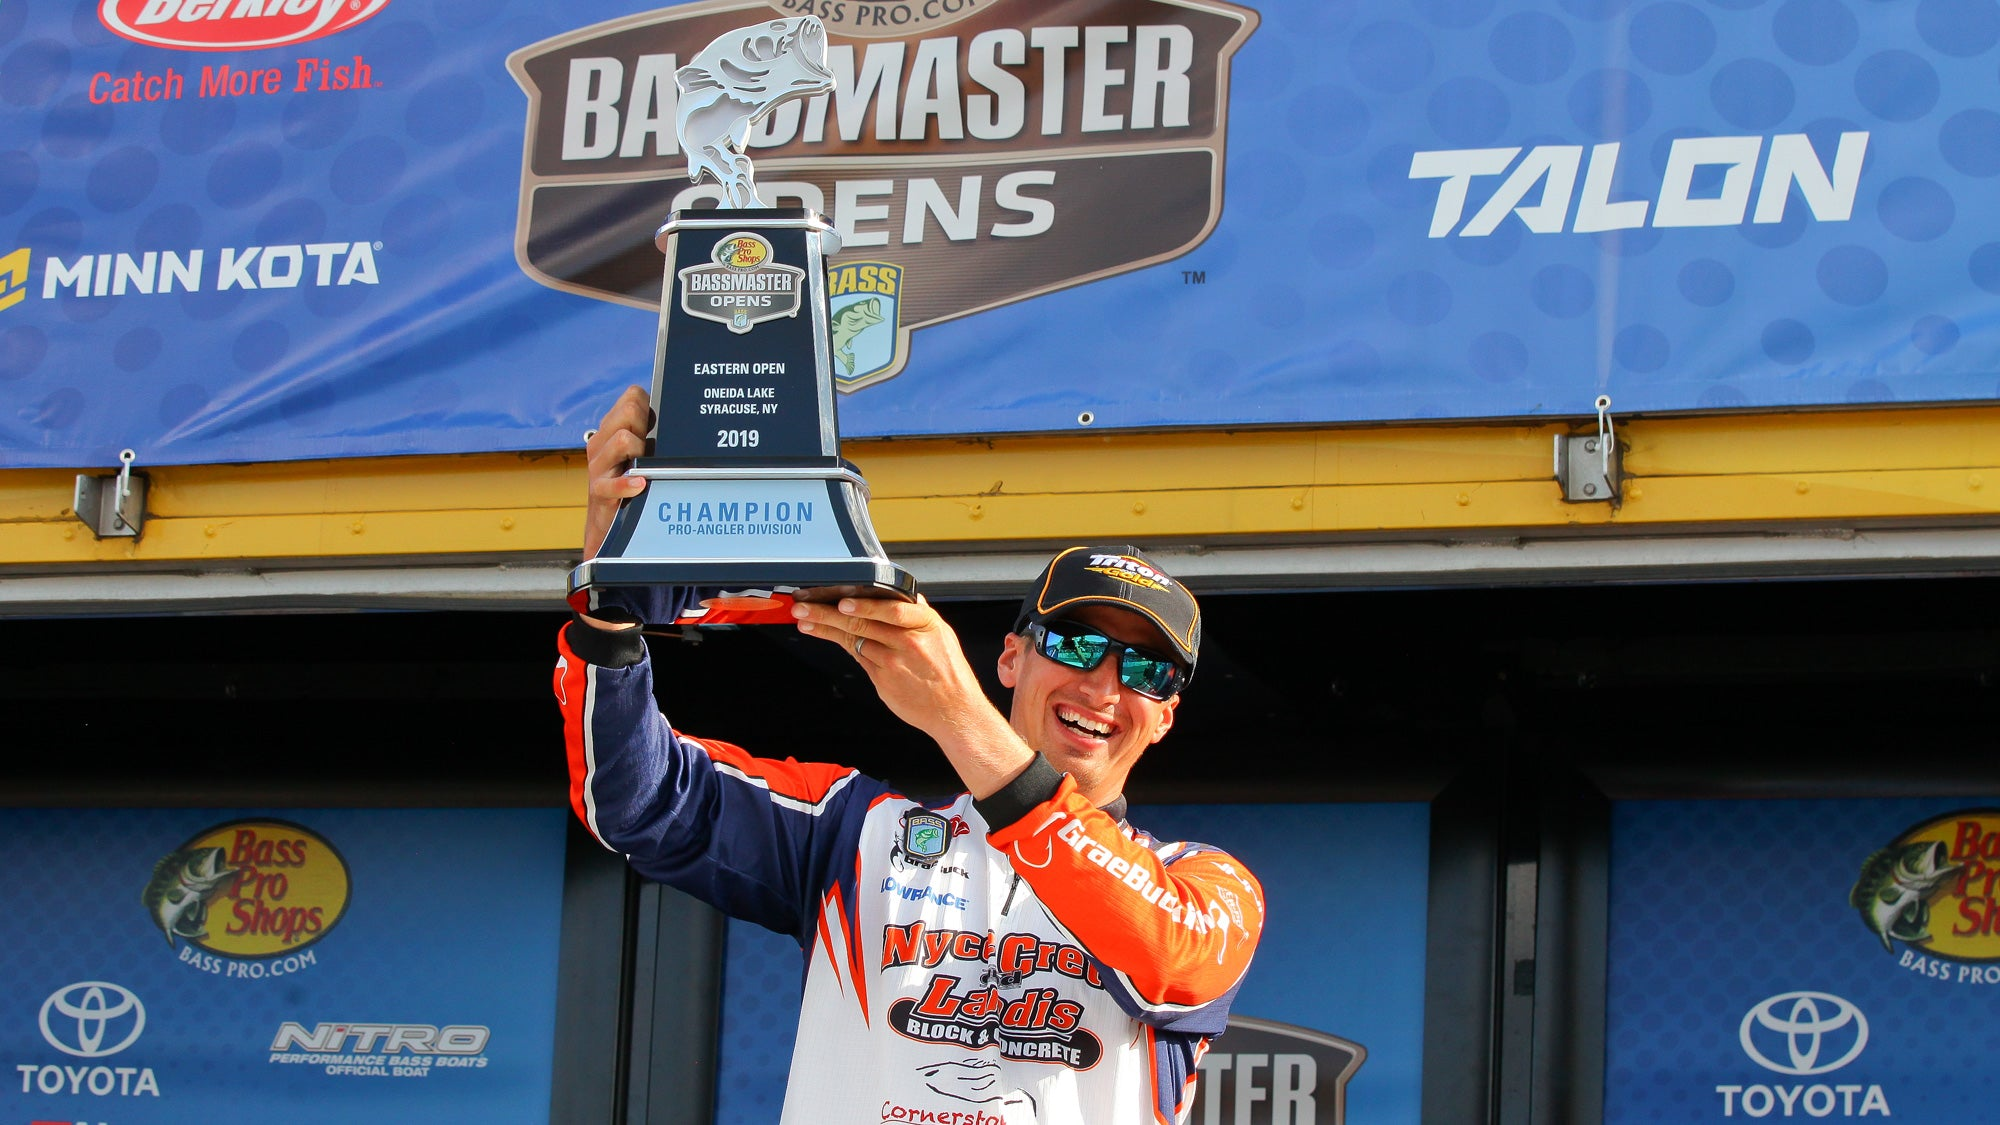 Grae Buck secures Bassmaster Classis Berth for 2020 by winning the BASS Open on Lake Oneida. Cornerstone Baits Logo on jersey for sponsorship purposes.